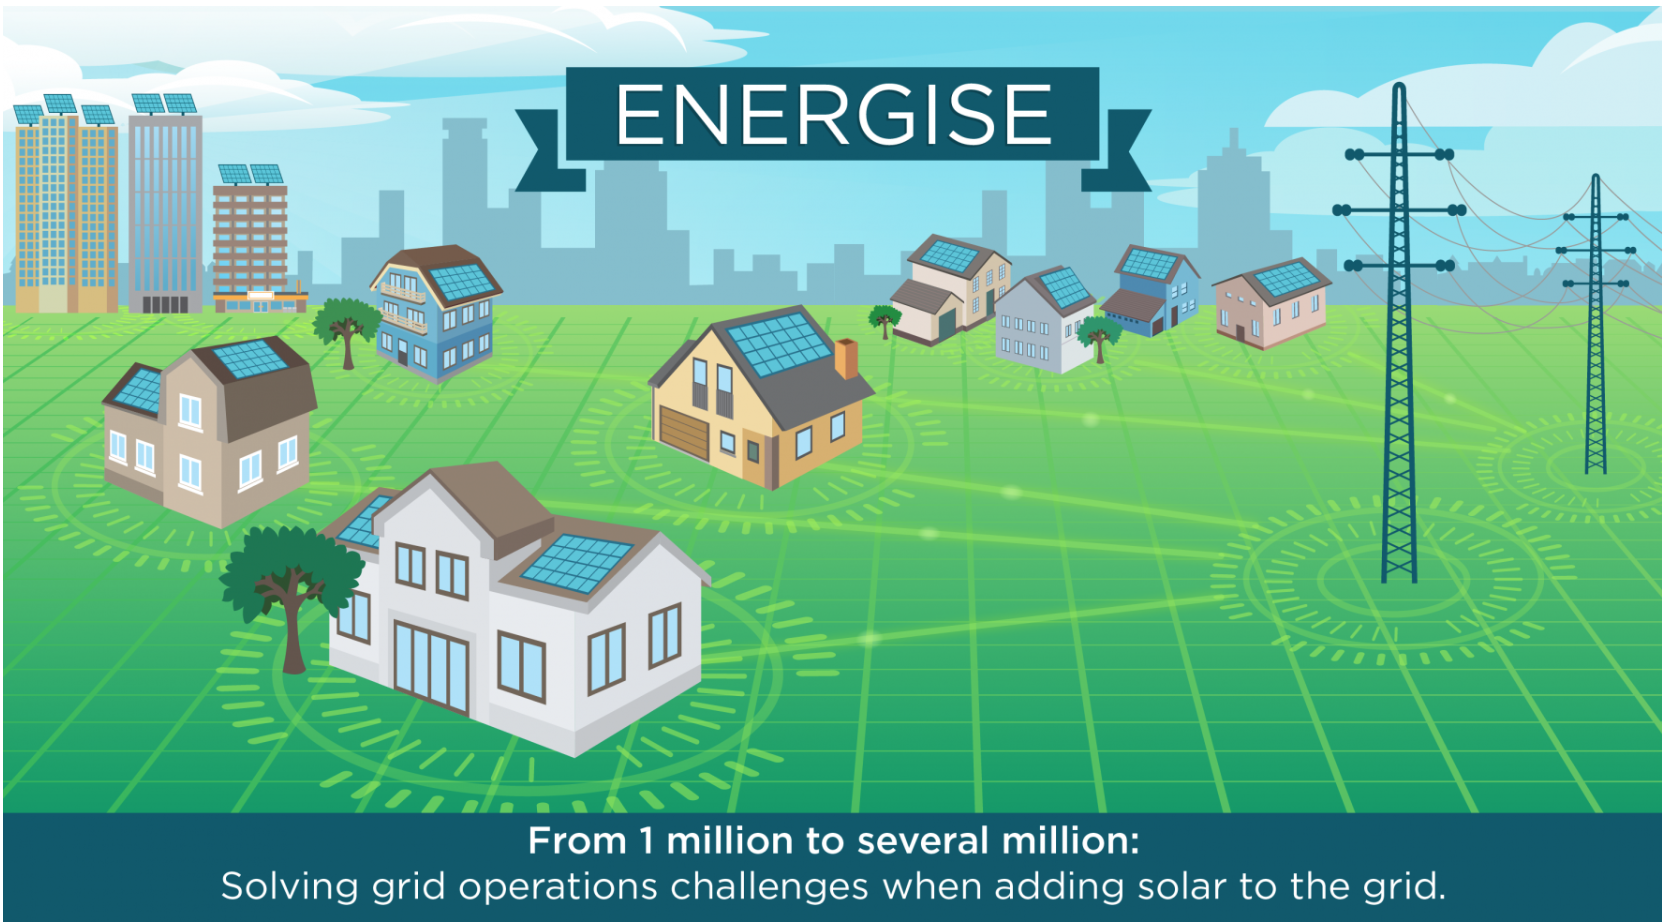 Energy Department Announces up to $30 Million for Projects to Integrate Solar into the Nation's Electric Grid